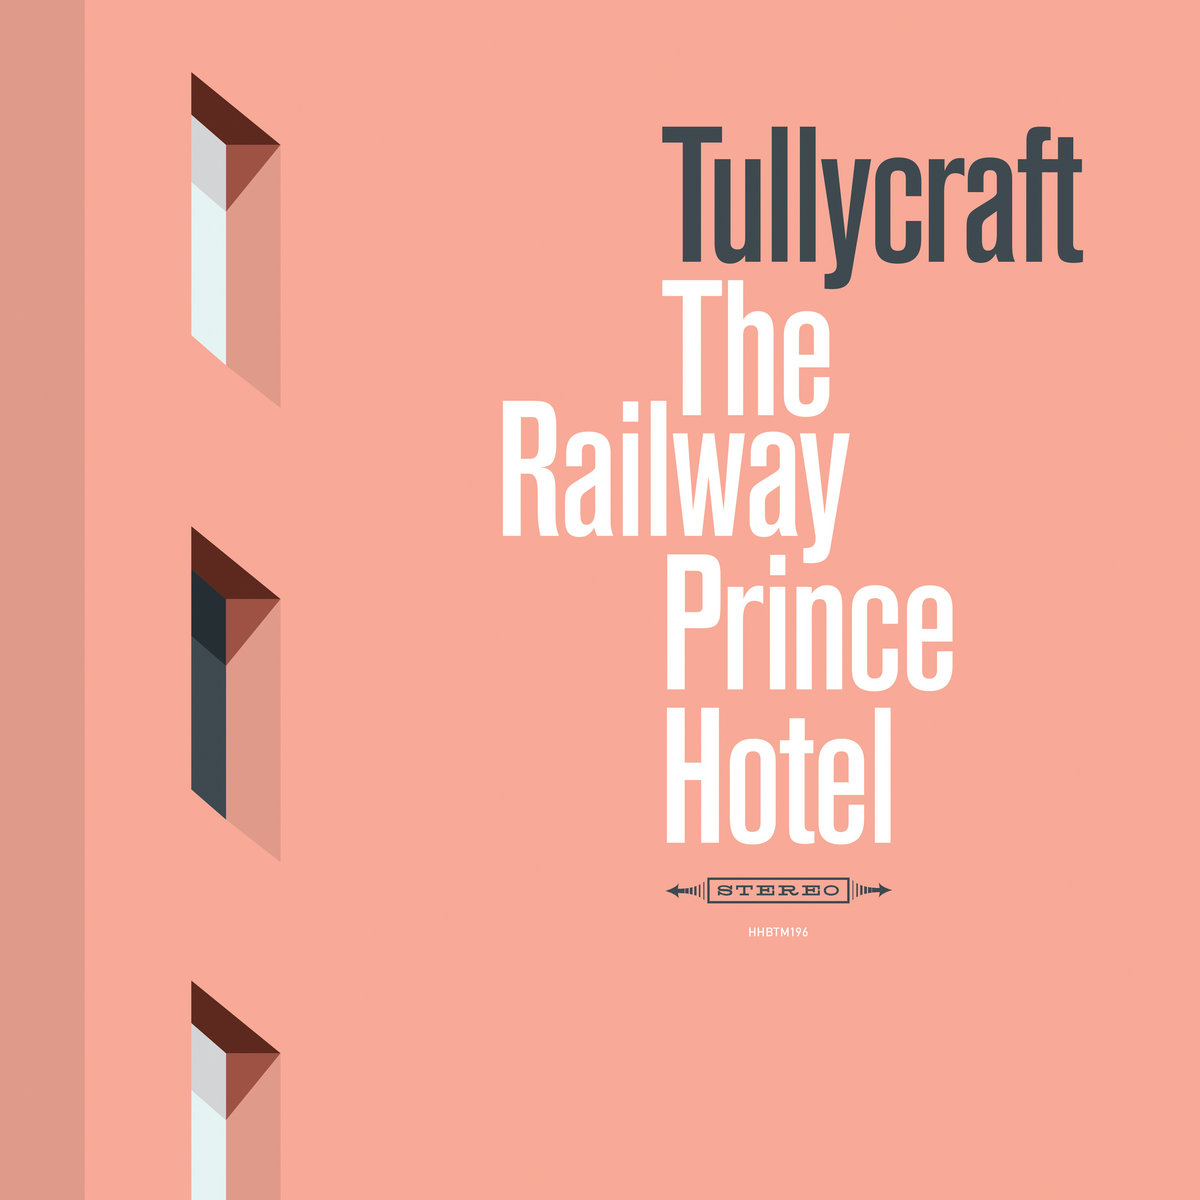 The Railway Prince Hotel | Tullycraft